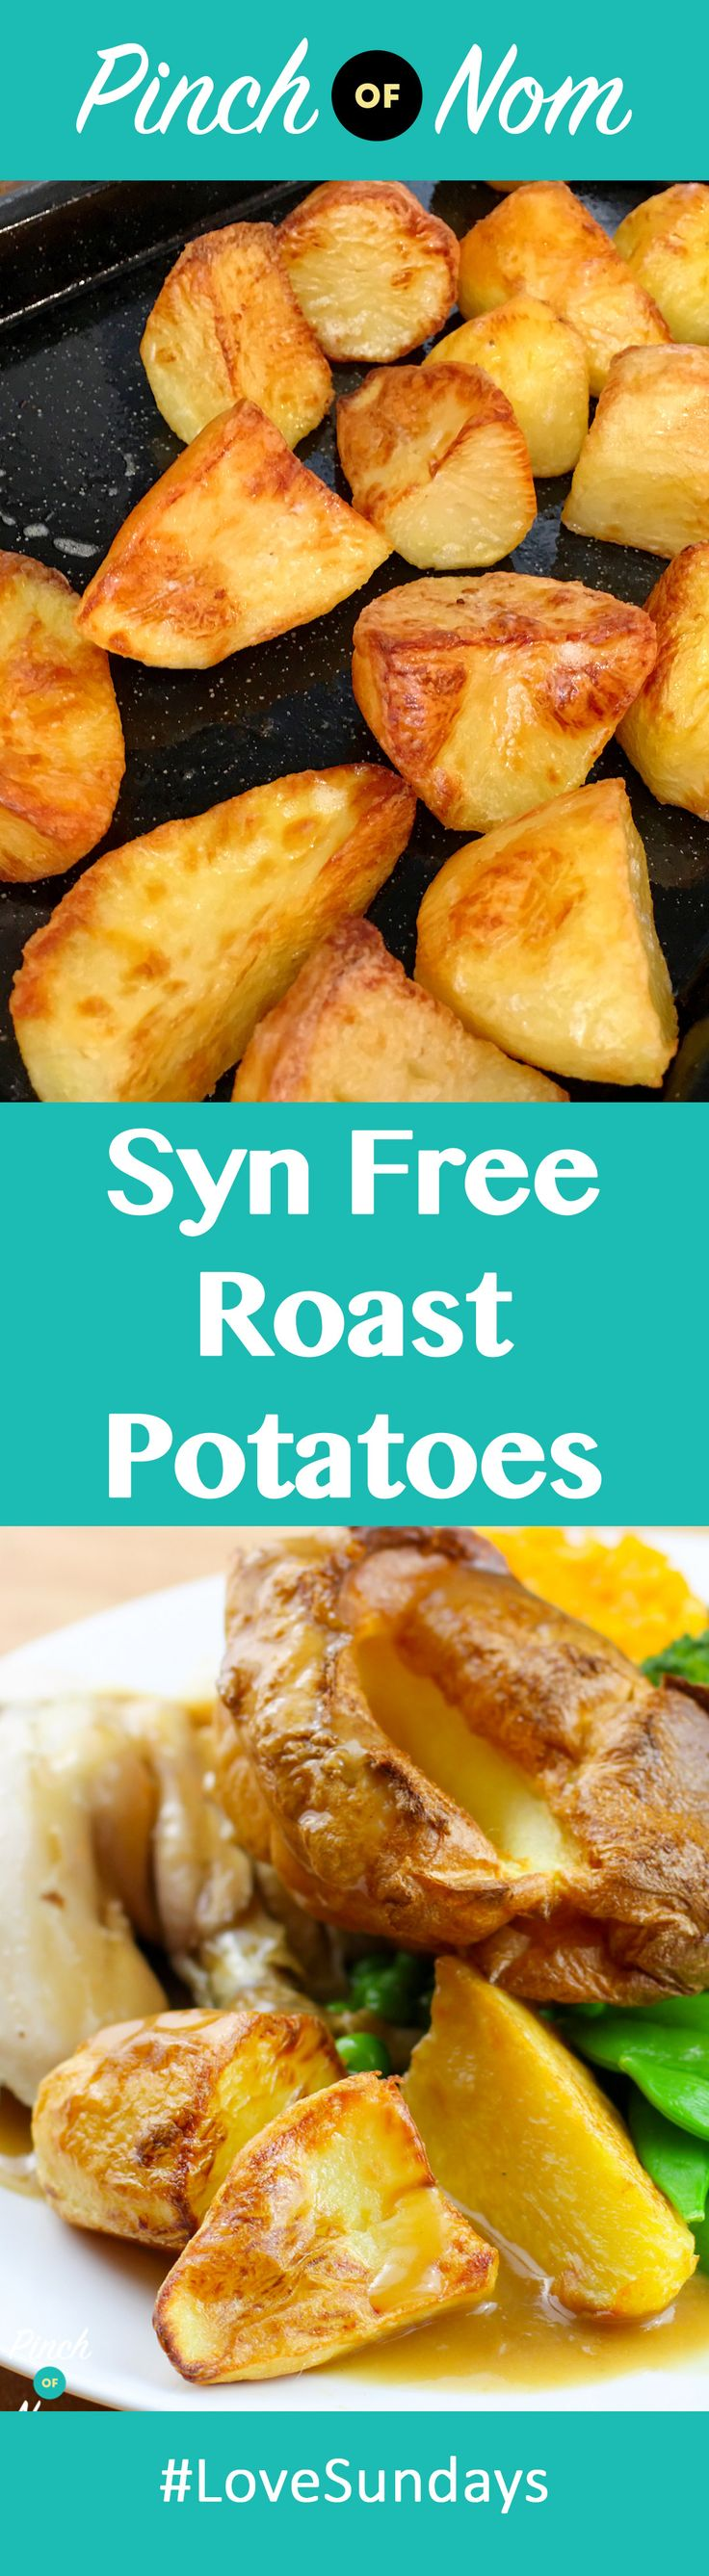 98 Best Images About Pinch Of Nom Syn Free Recipes On